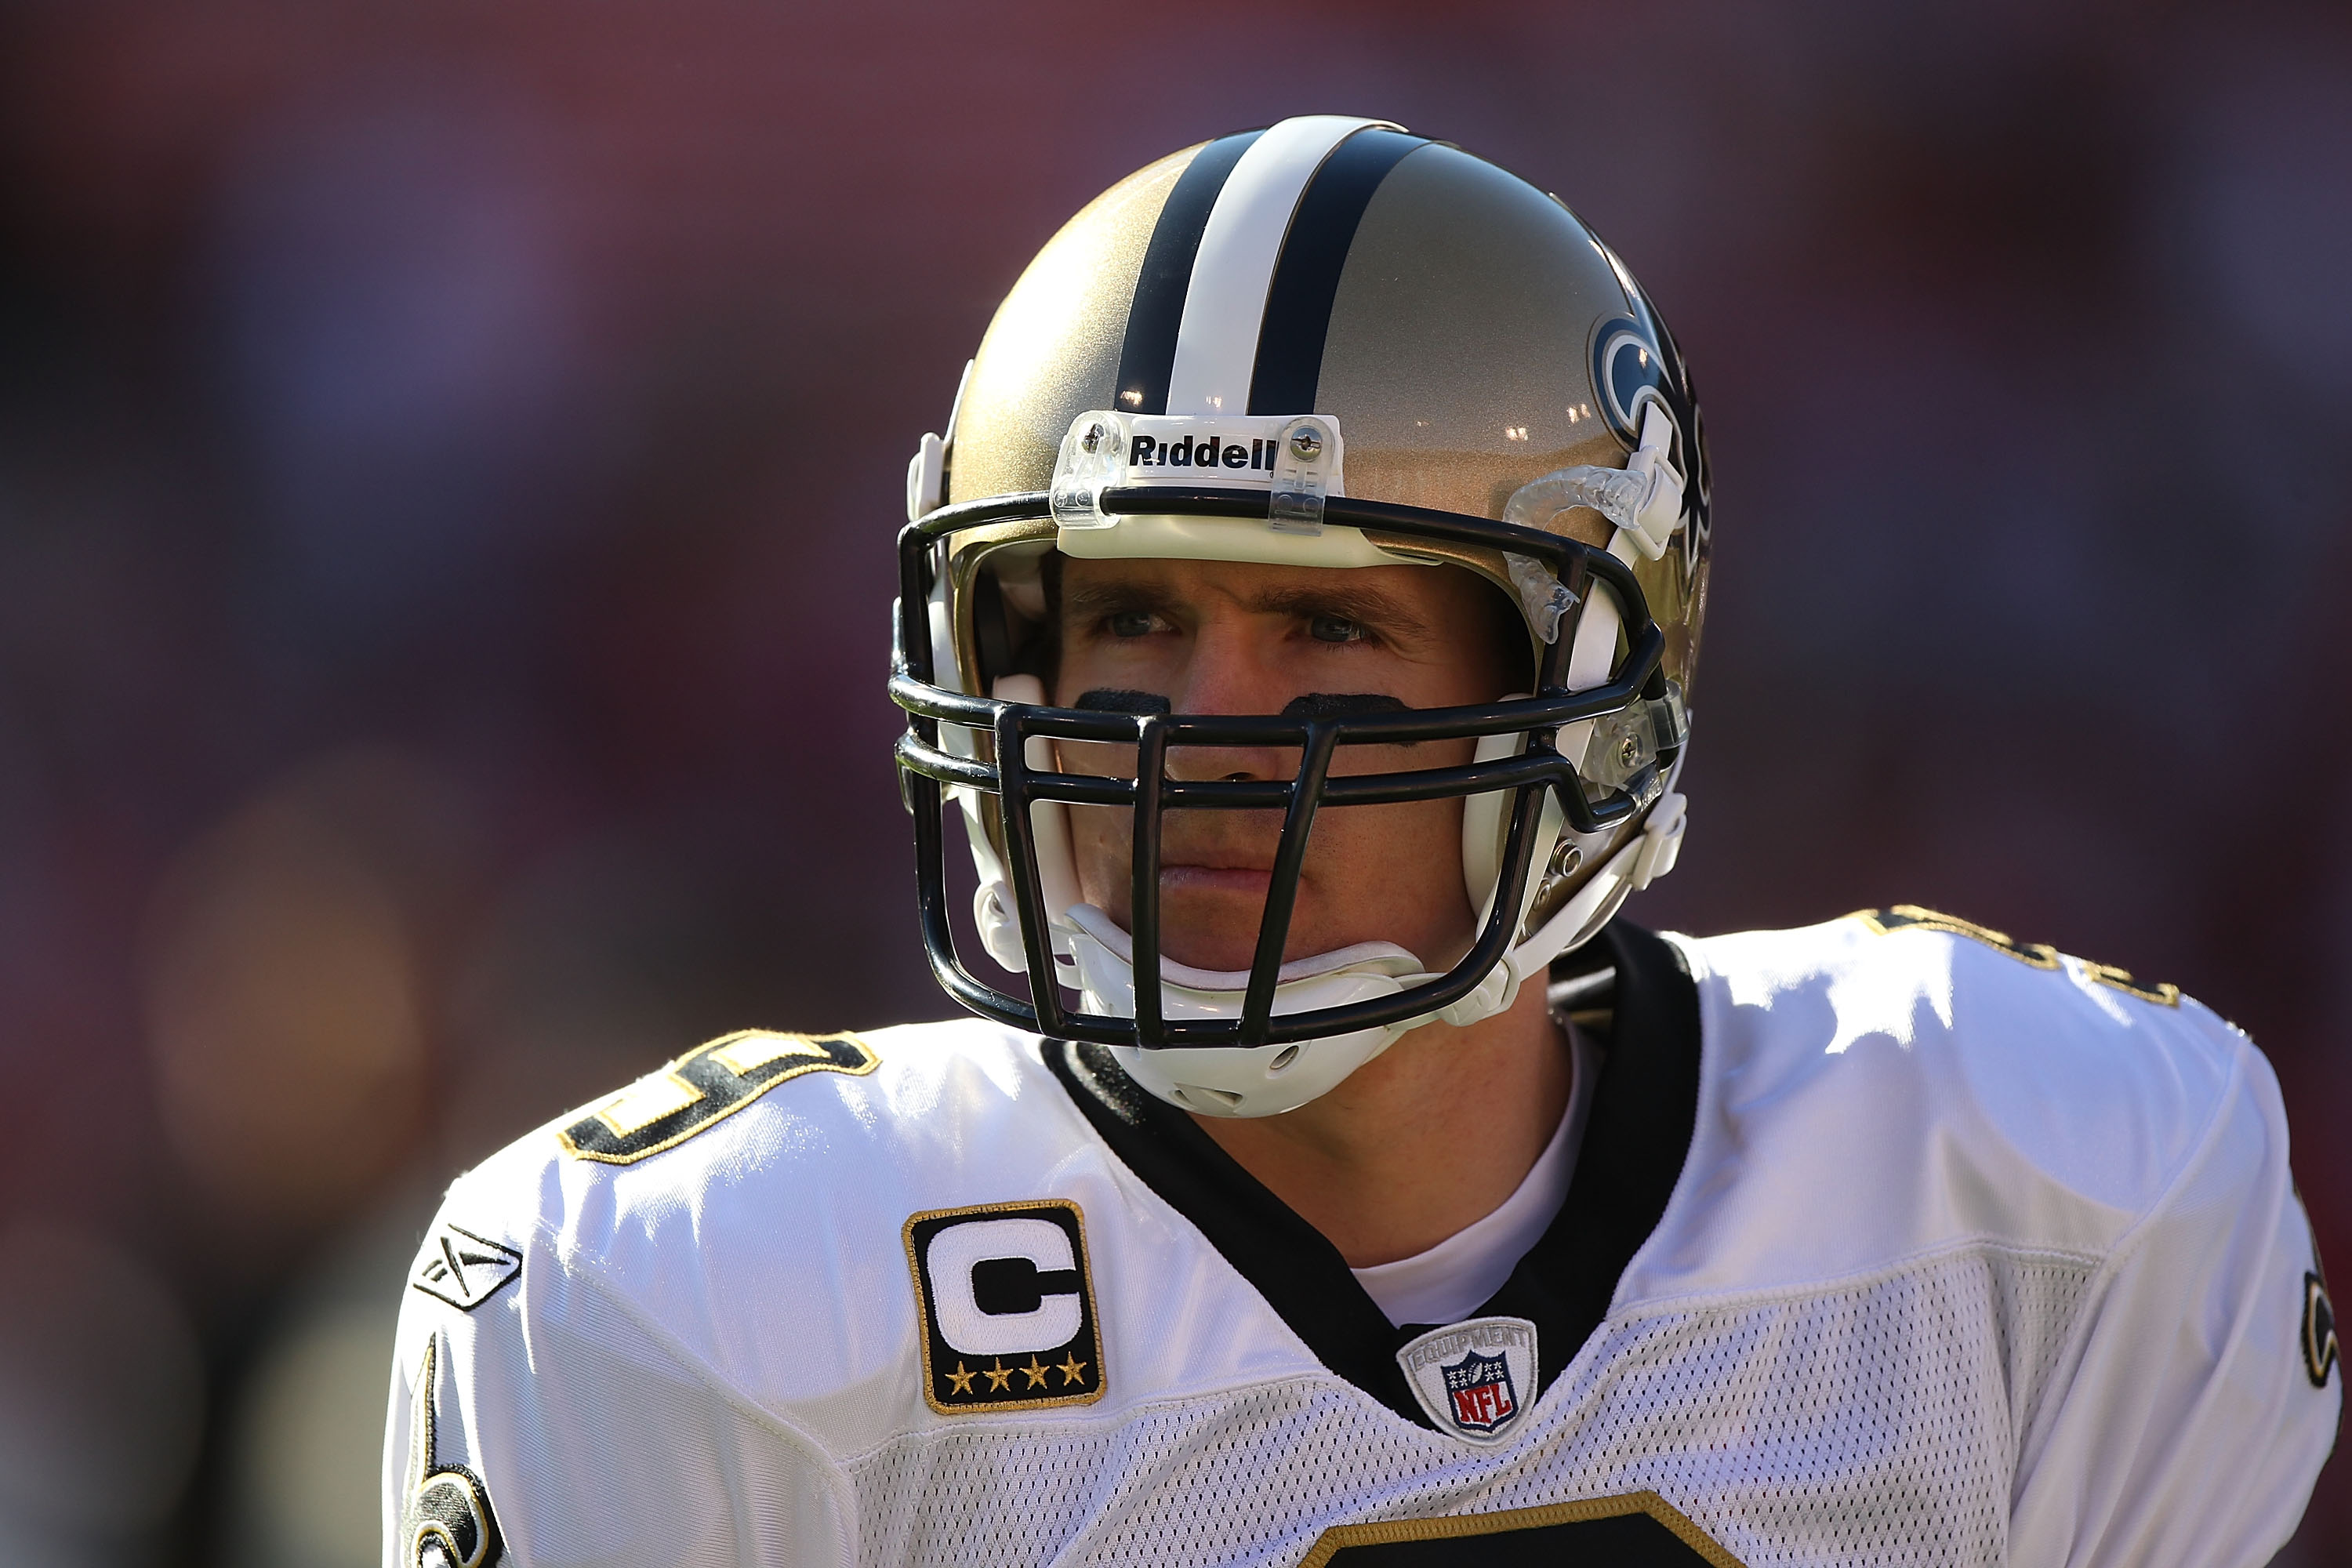 SAN FRANCISCO - SEPTEMBER 20:  Drew Brees #9 of the New Orleans Saints warms up against the San Francisco 49ers during an NFL game at Candlestick Park on September 20, 2010 in San Francisco, California.  (Photo by Jed Jacobsohn/Getty Images)